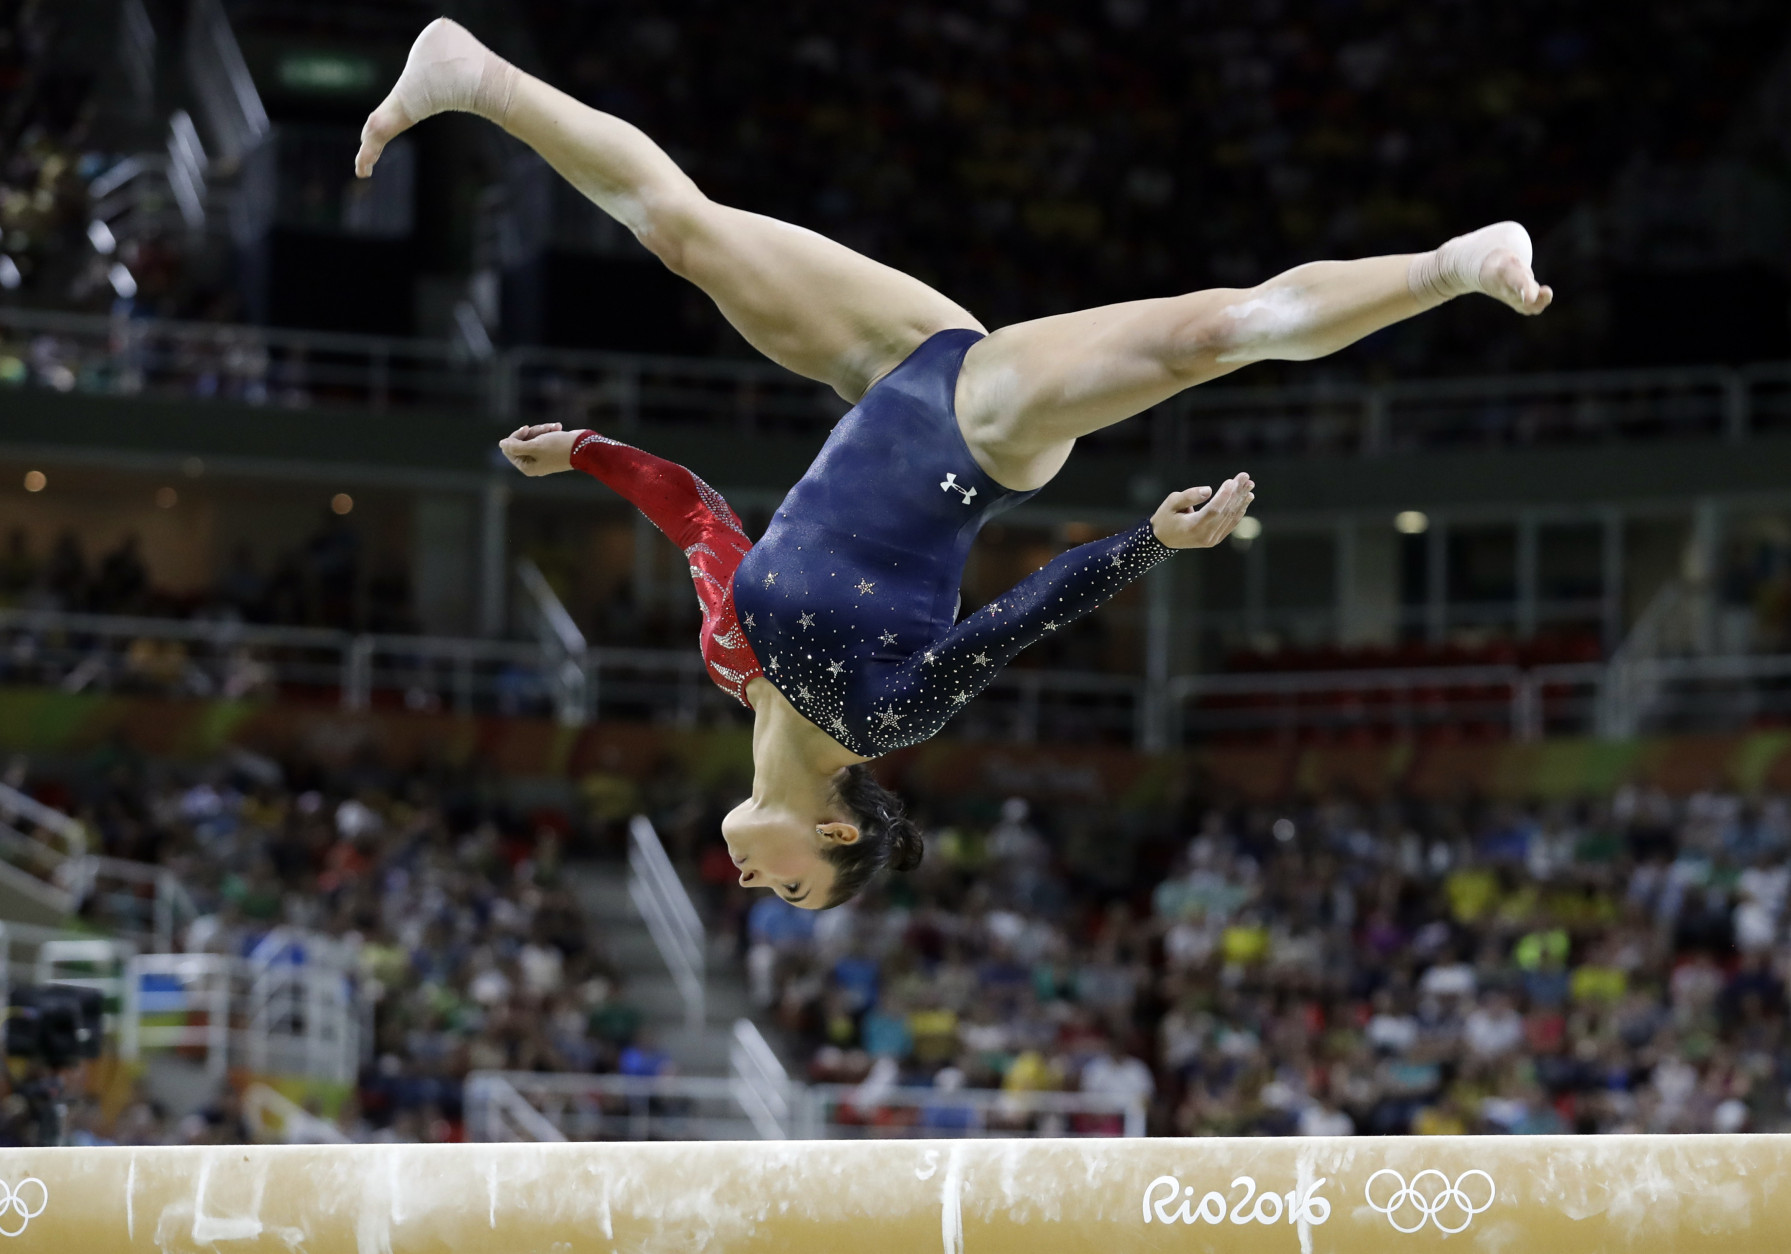 United States' Aly Raisman performs on the balance beam during the artistic gymnastics women's qualification at the 2016 Summer Olympics in Rio de Janeiro, Brazil, Sunday, Aug. 7, 2016. (AP Photo/Rebecca Blackwell)